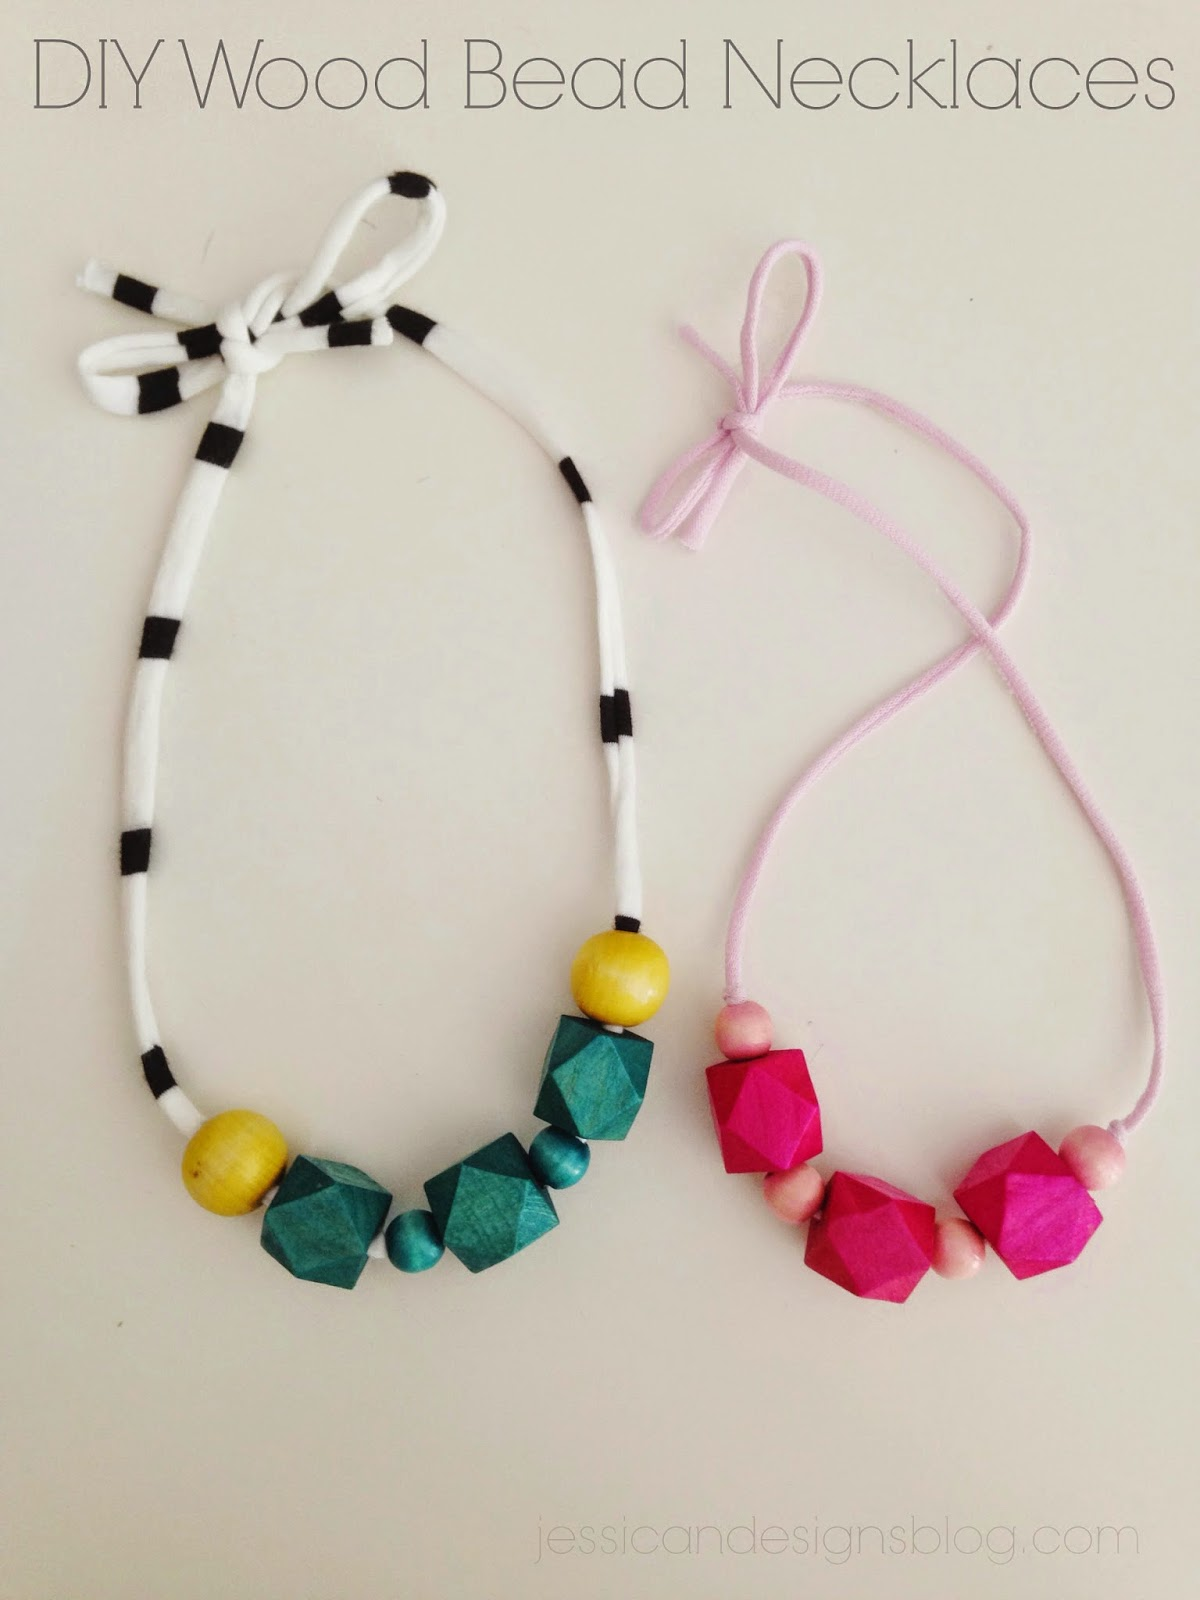 jessicandesigns DIY Wood Bead Necklaces